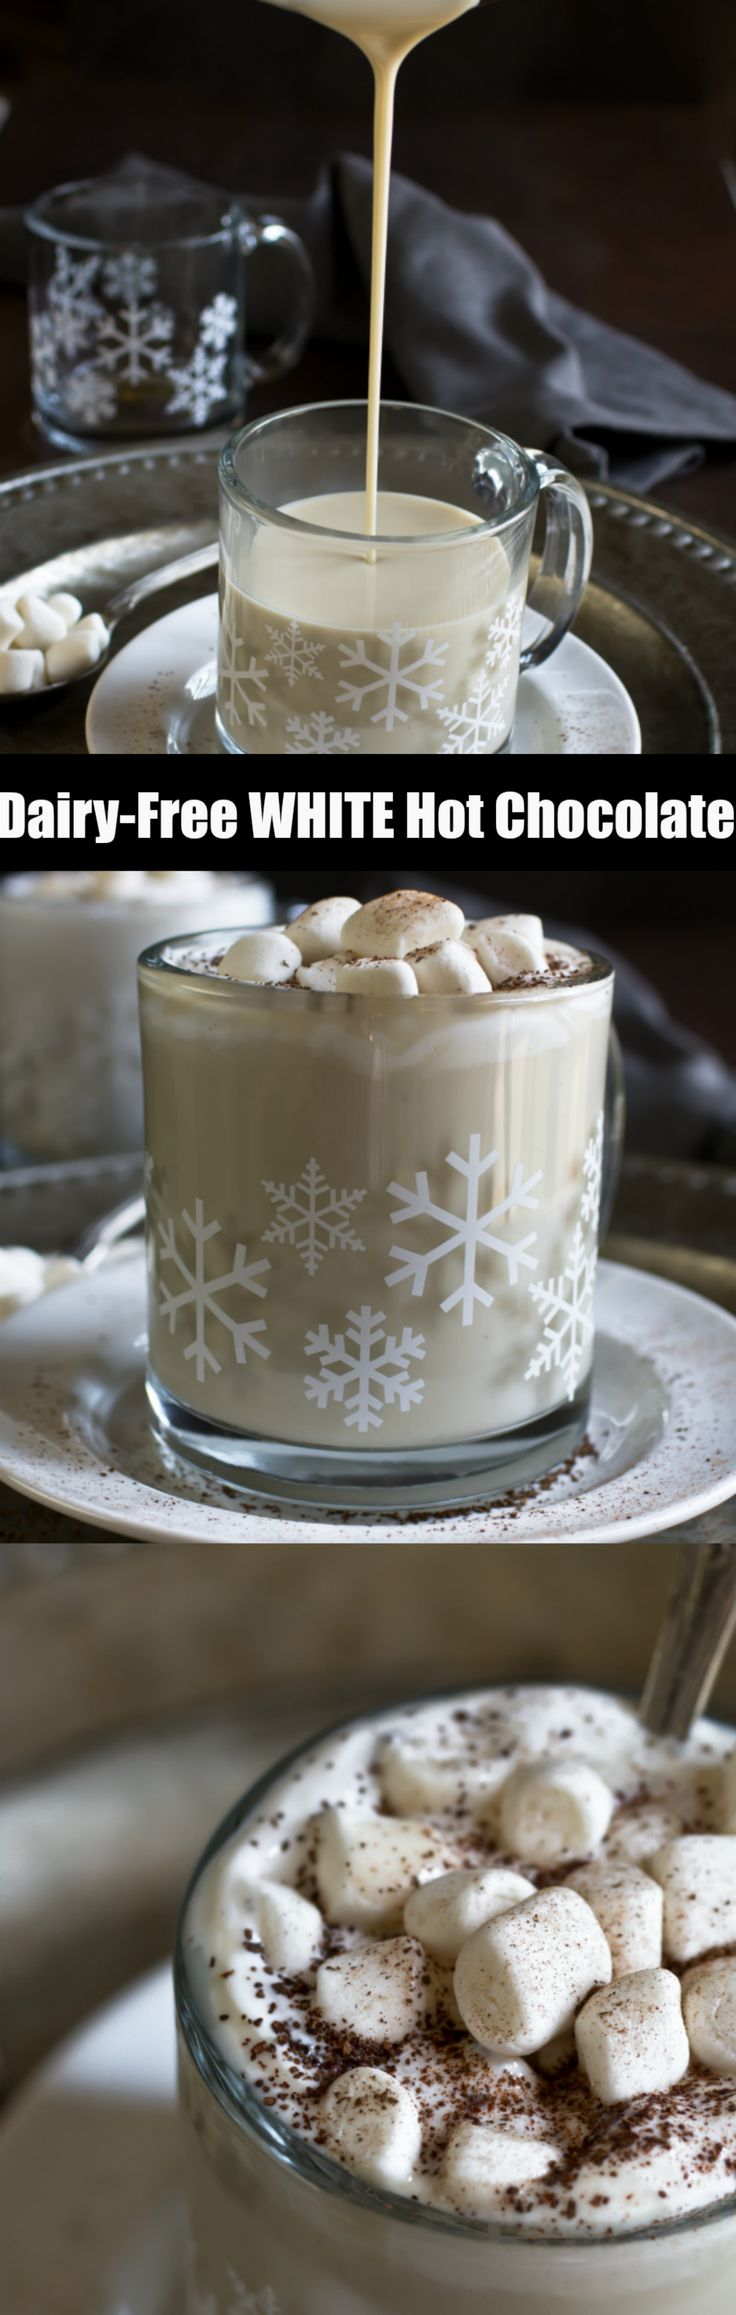 Homemade Dairy-Free Vegan White Hot Chocolate that is creamy, rich, indulgent and delicious! Made with just 5 ingredients...coconut milk, real cocoa butter, cashew butter, maple syrup and vanilla!